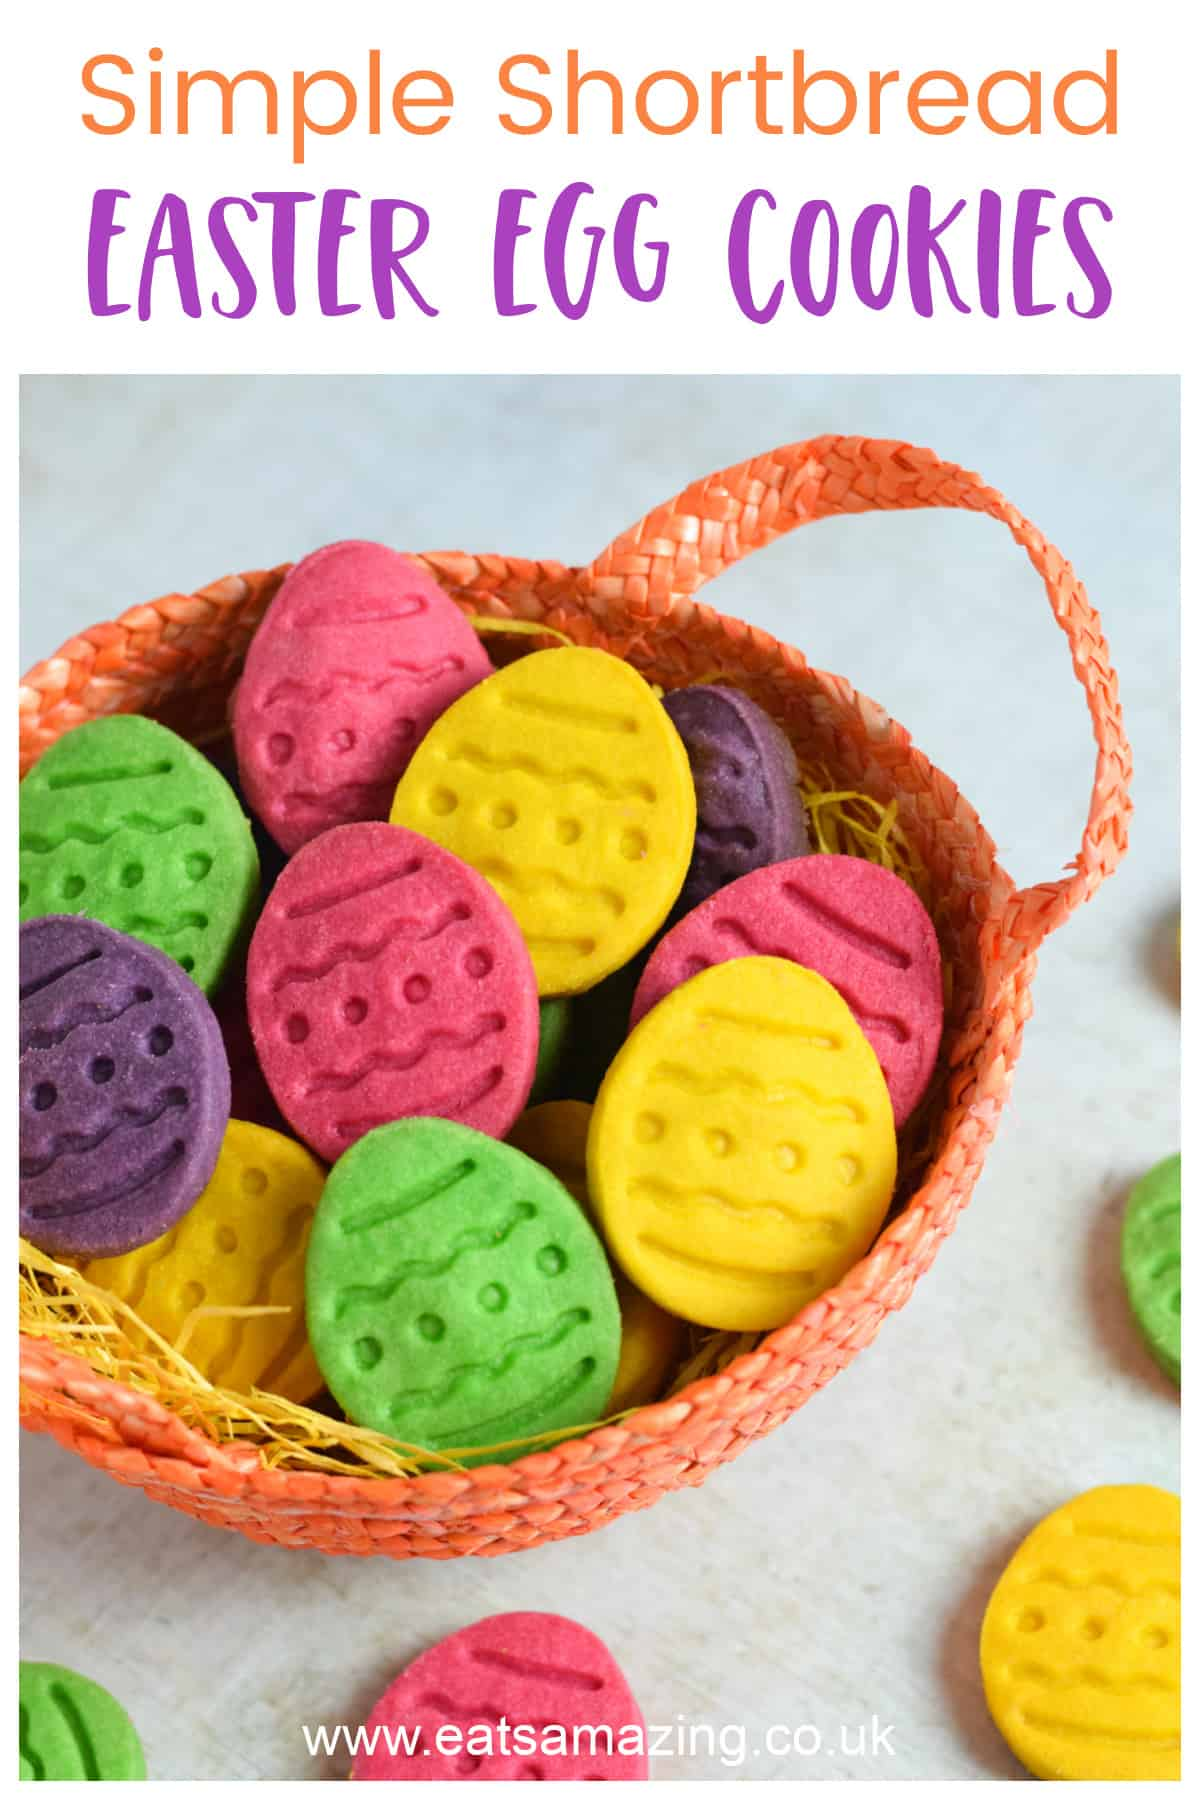 How to make easy shortbread Easter egg cookies - fun Easter recipe for kids